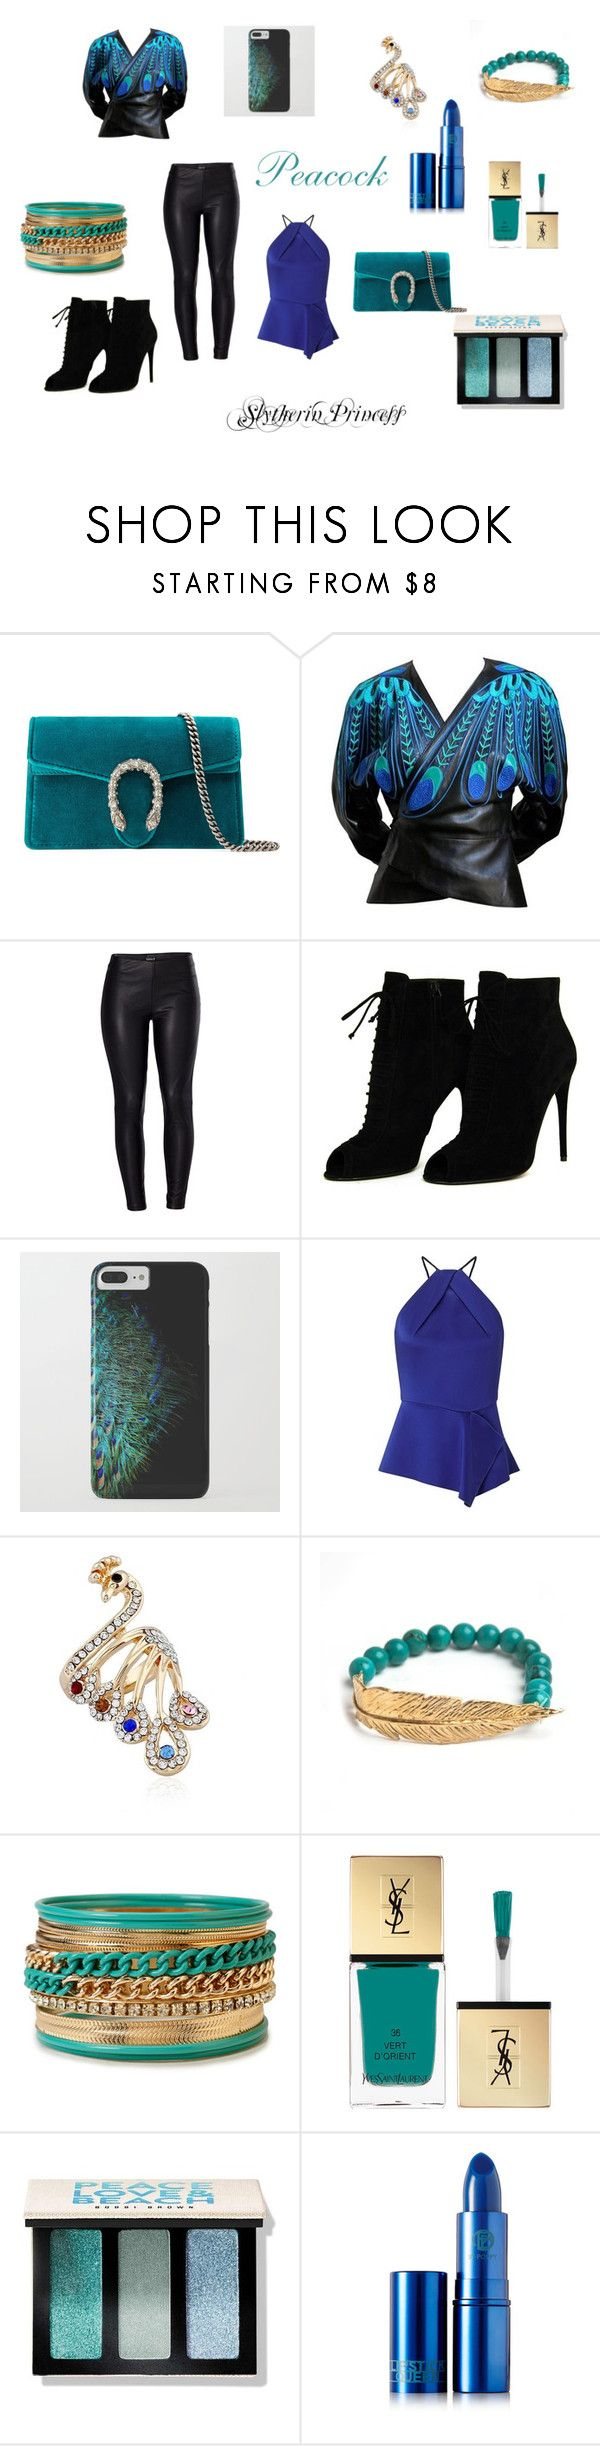 """Peacock"" by zillah-conder ❤ liked on Polyvore featuring Gucci, Jitrois, Venus, Tom Ford, Roland Mouret, LeiVanKash, Forever 21, Yves Saint Laurent, Bobbi Brown Cosmetics and Lipstick Queen"